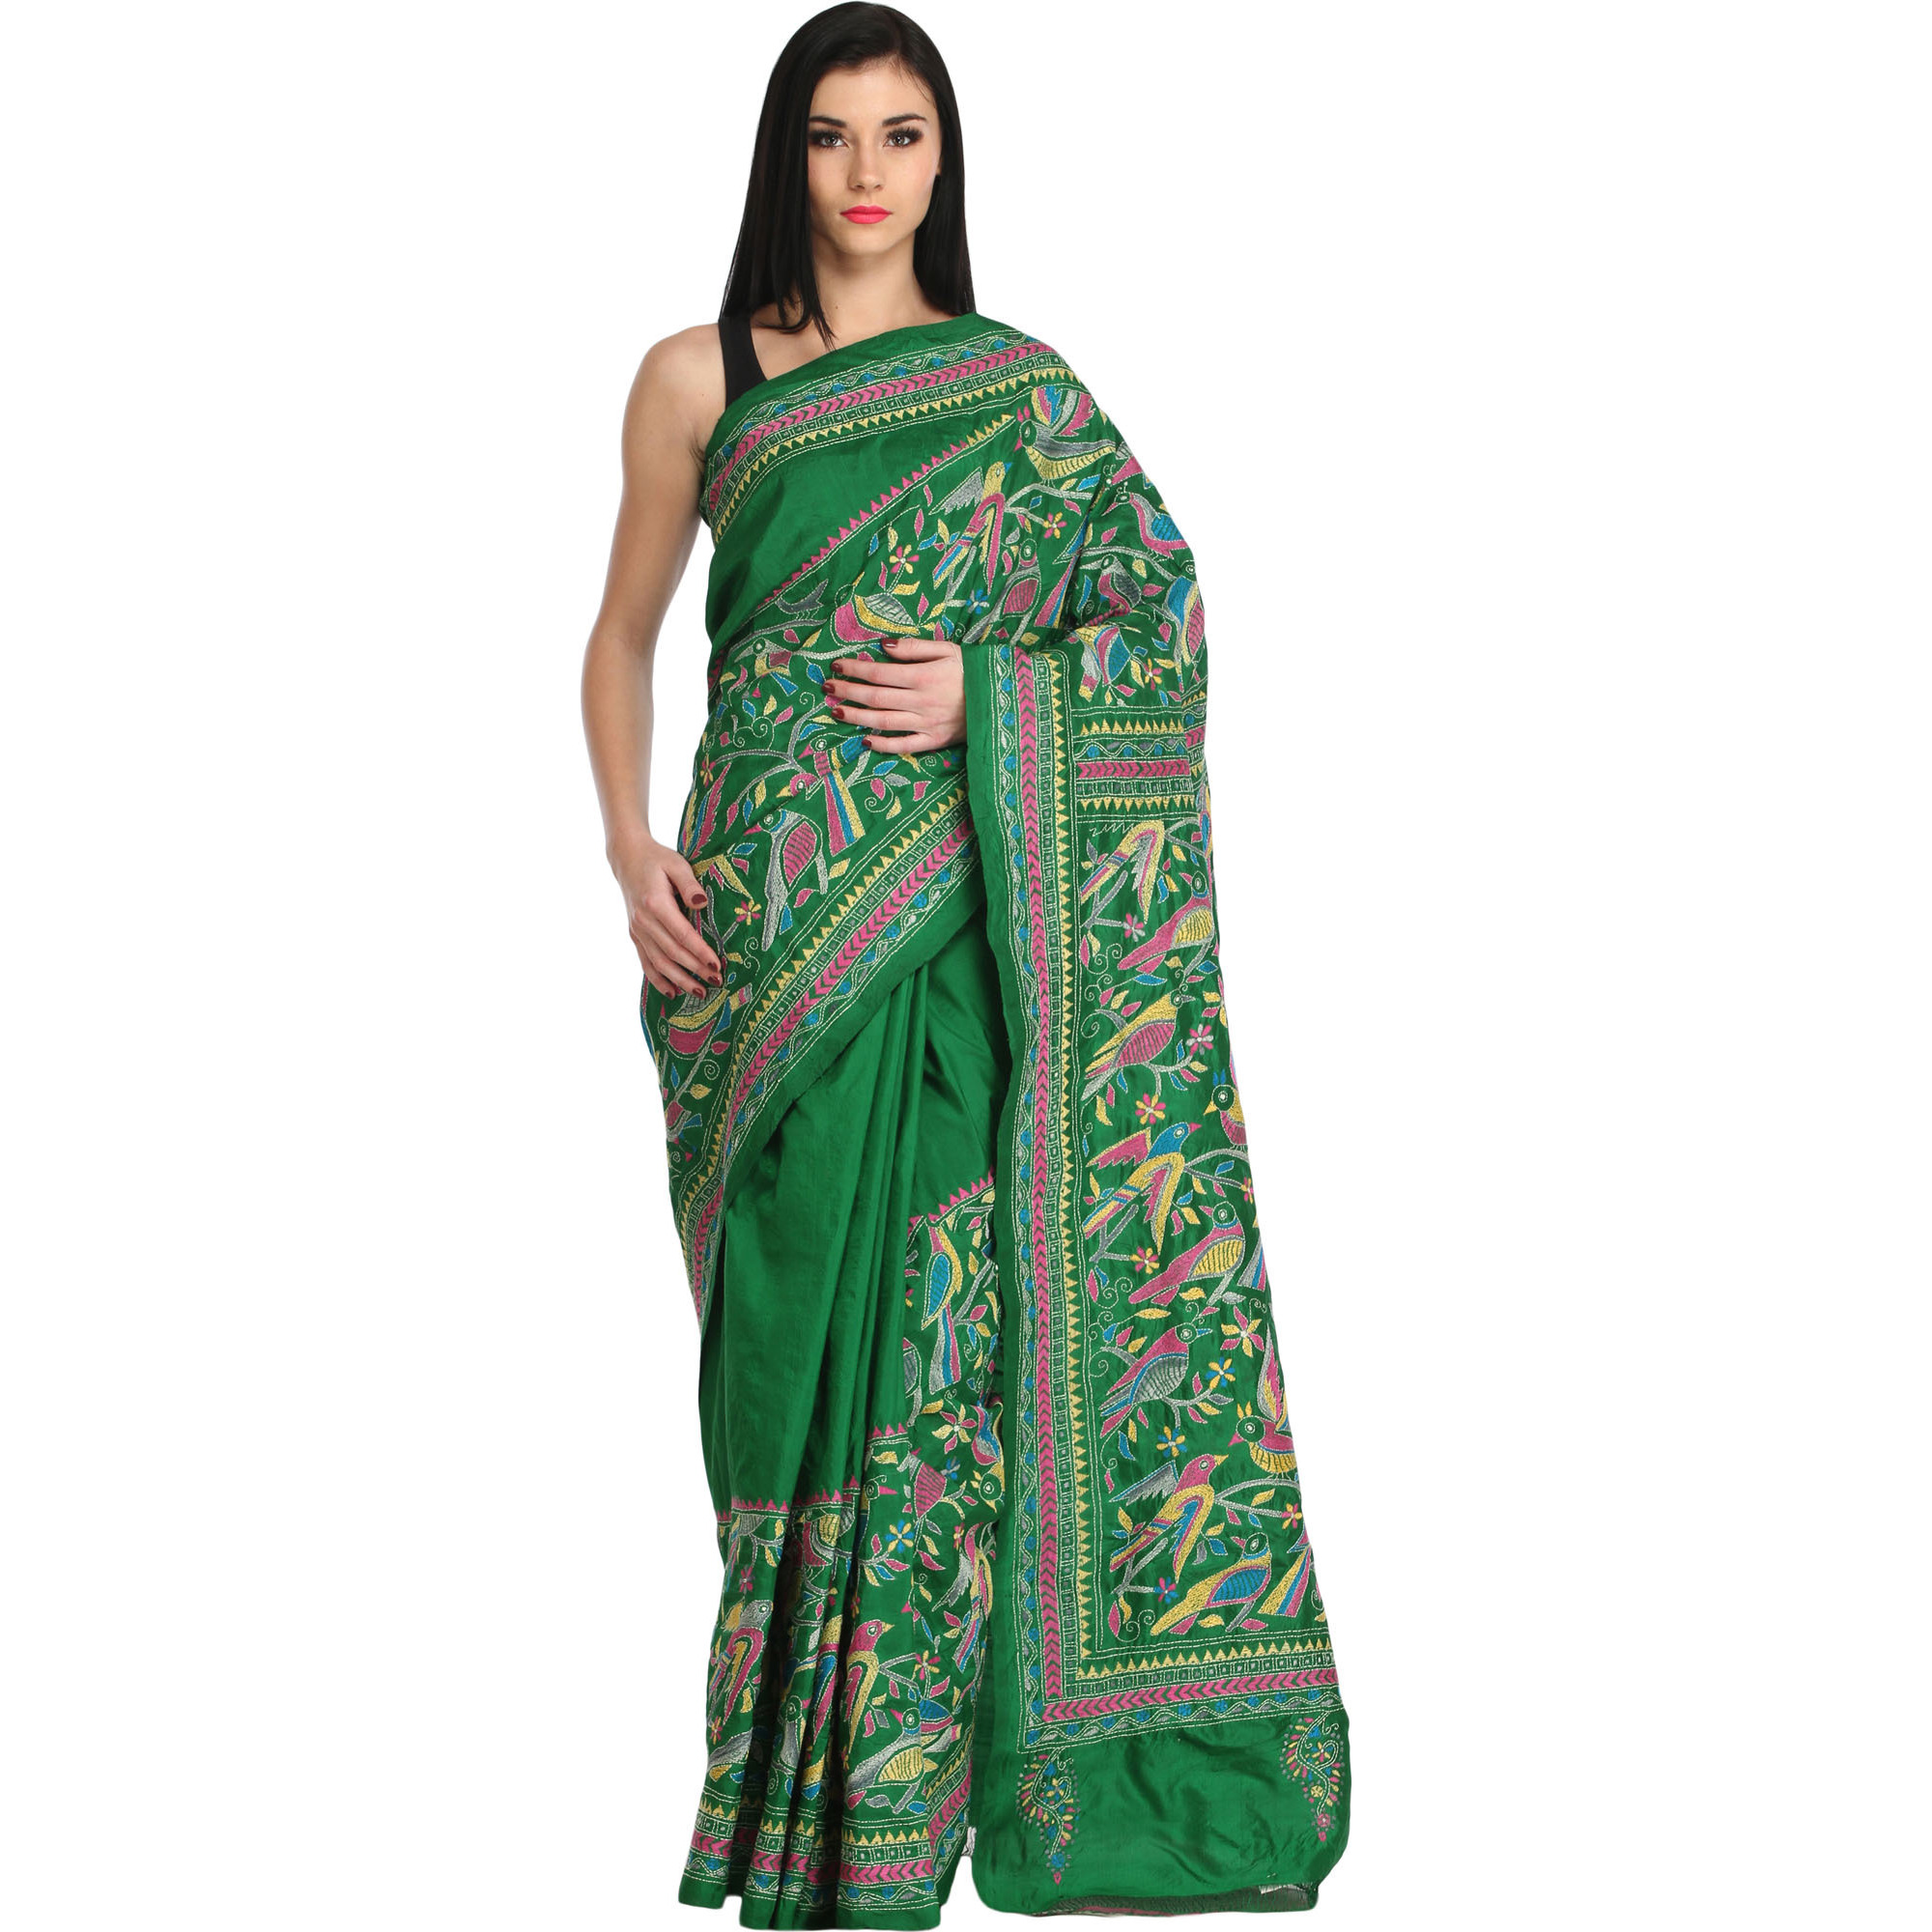 Kelly-Green Kantha Sari from Kolkata with Hand-Embroidered Birds